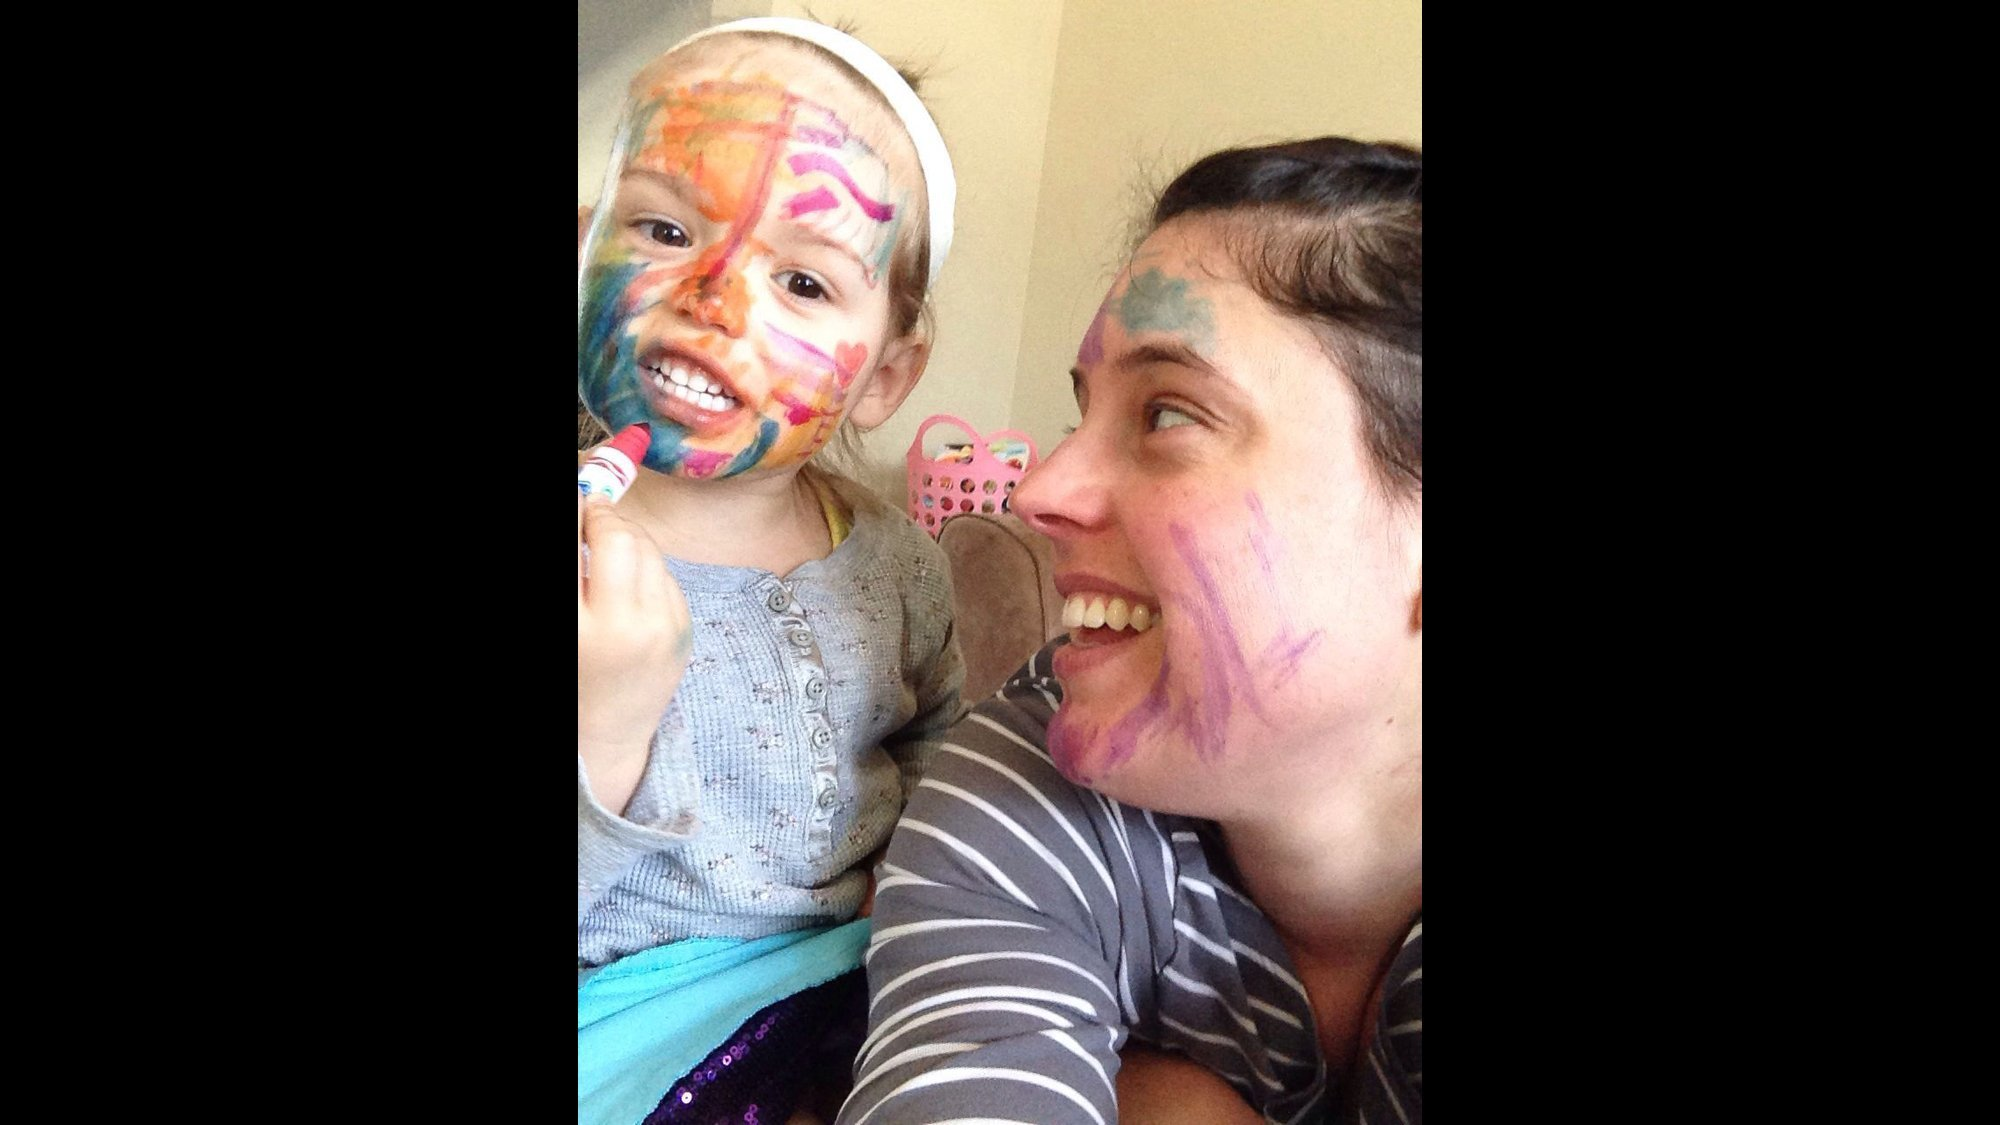 """""""One of my proudest moments as a mother: Letting my 3-year-old daughter color on my face. When she asked to color me, this gave me a new 'aha moment': Live a little, even out of my comfort zone."""" -- Tanya Wilson, St. Thomas, Ontario"""